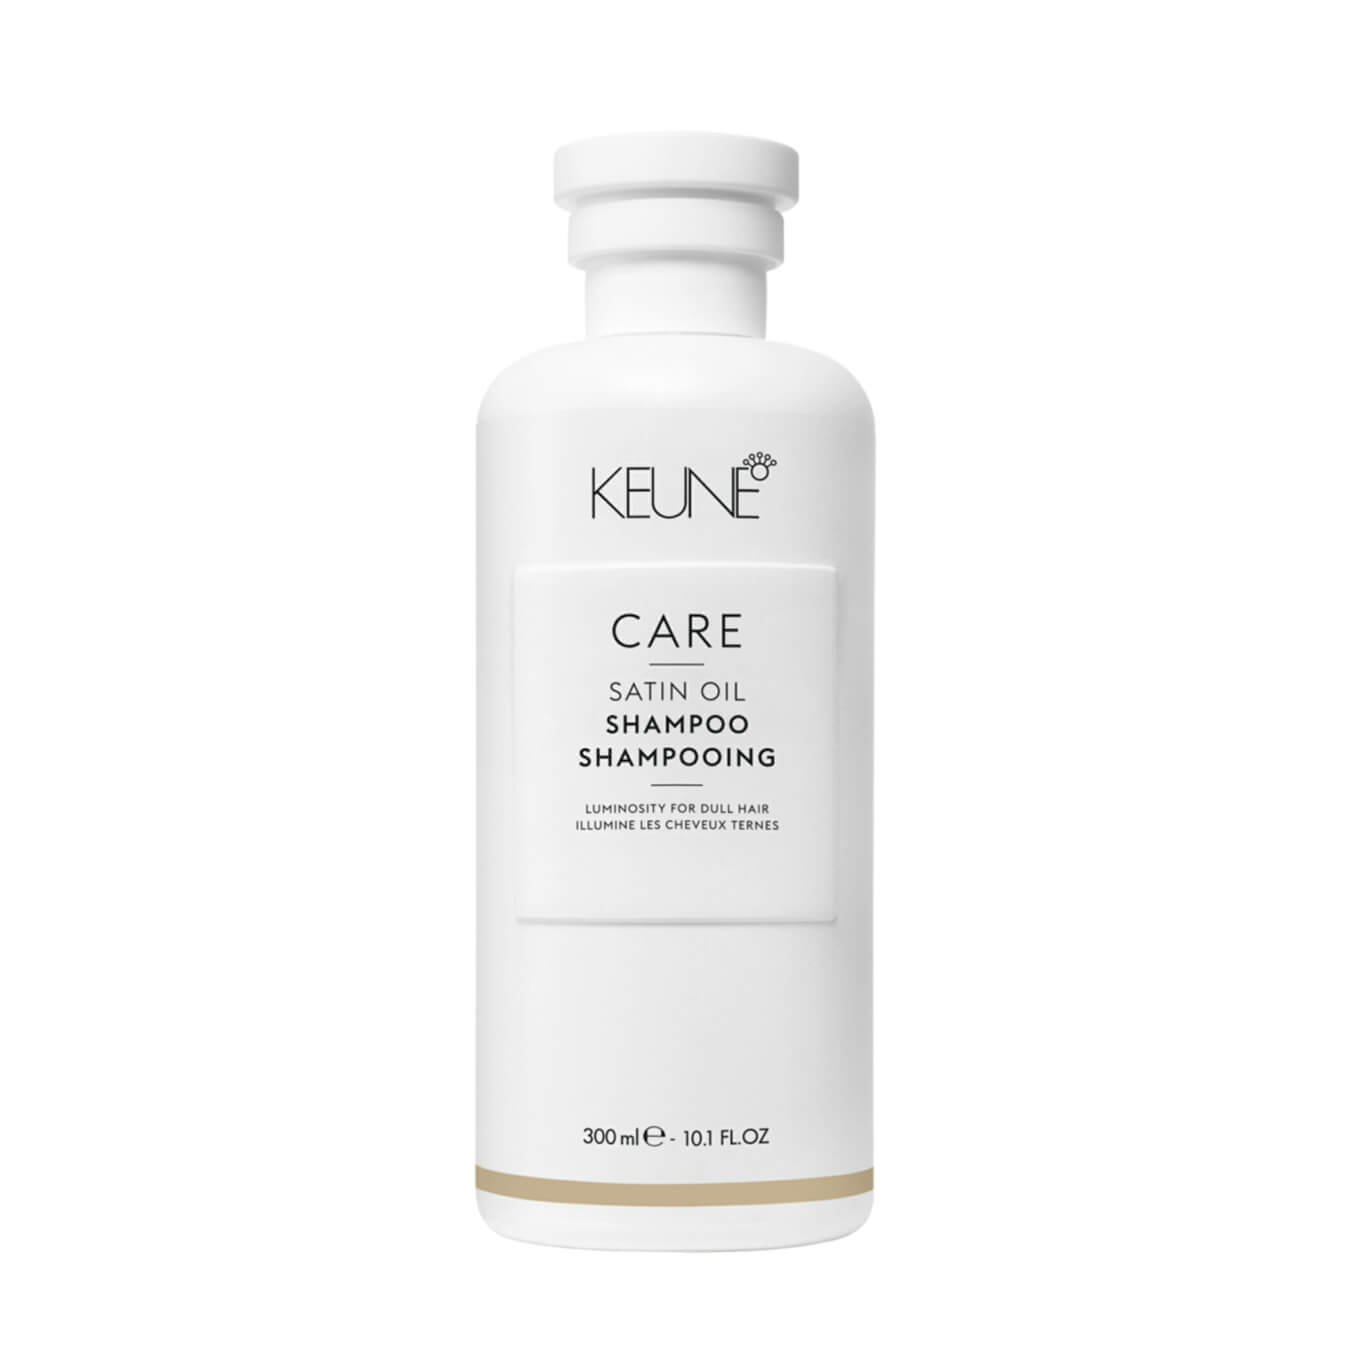 Koop Keune Care Satin Oil Shampoo 300ml